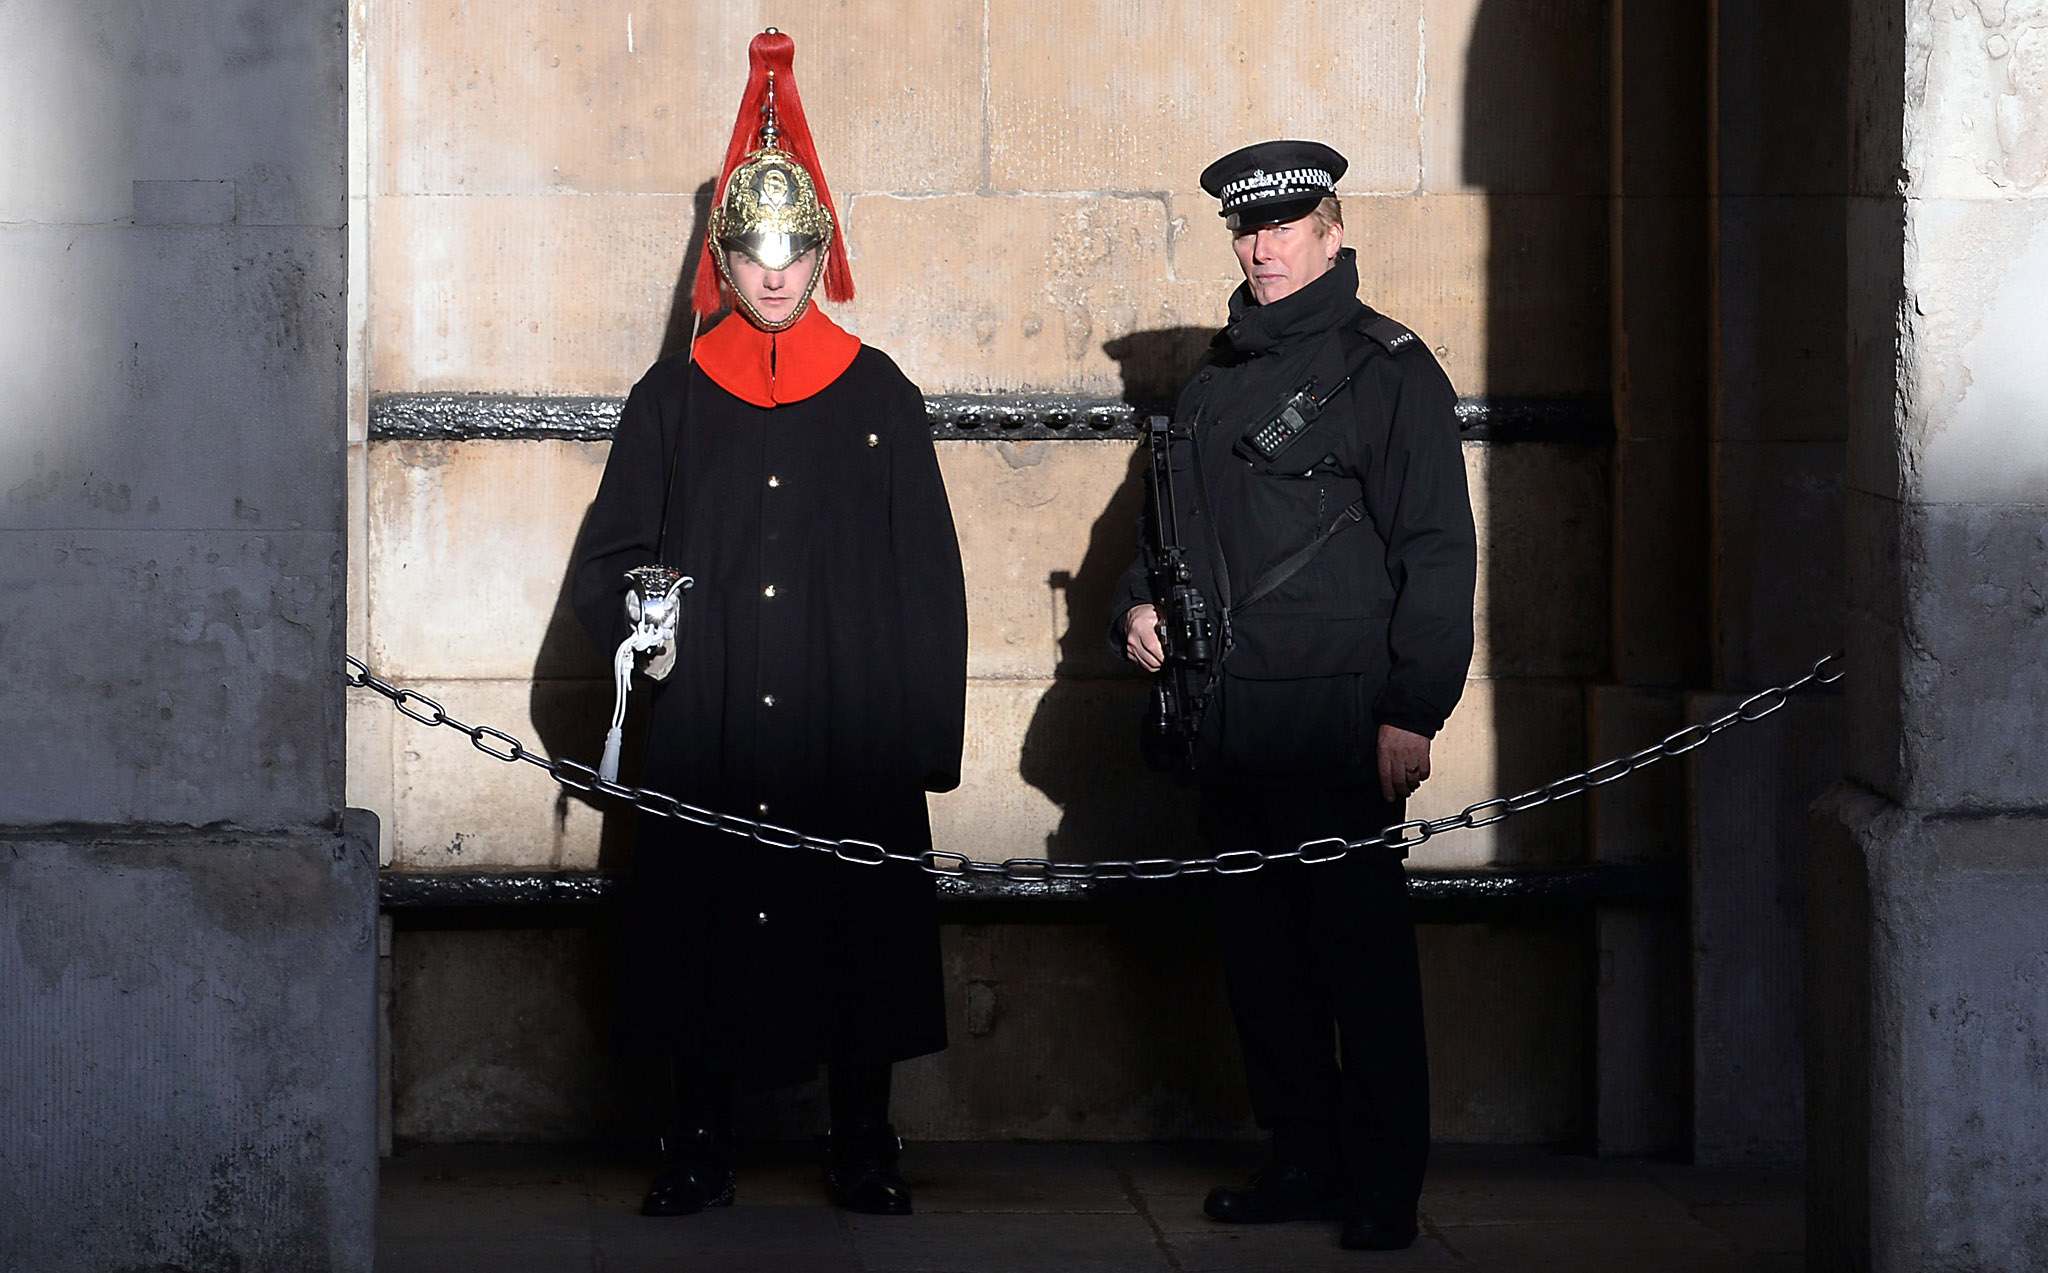 Armed police officers in Westminster, London, as thousands of police including increased numbers of firearms officers will be on duty as the capital ushers in the New Year tonight. PRESS ASSOCIATION Photo. Picture date: Thursday December 31, 2015. Scotland Yard said there will be around 3,000 officers across central London as mayor Boris Johnson's fireworks display with Unicef brings in 2016. See PA story SOCIAL Year. Photo credit should read: Stefan Rousseau/PA Wire